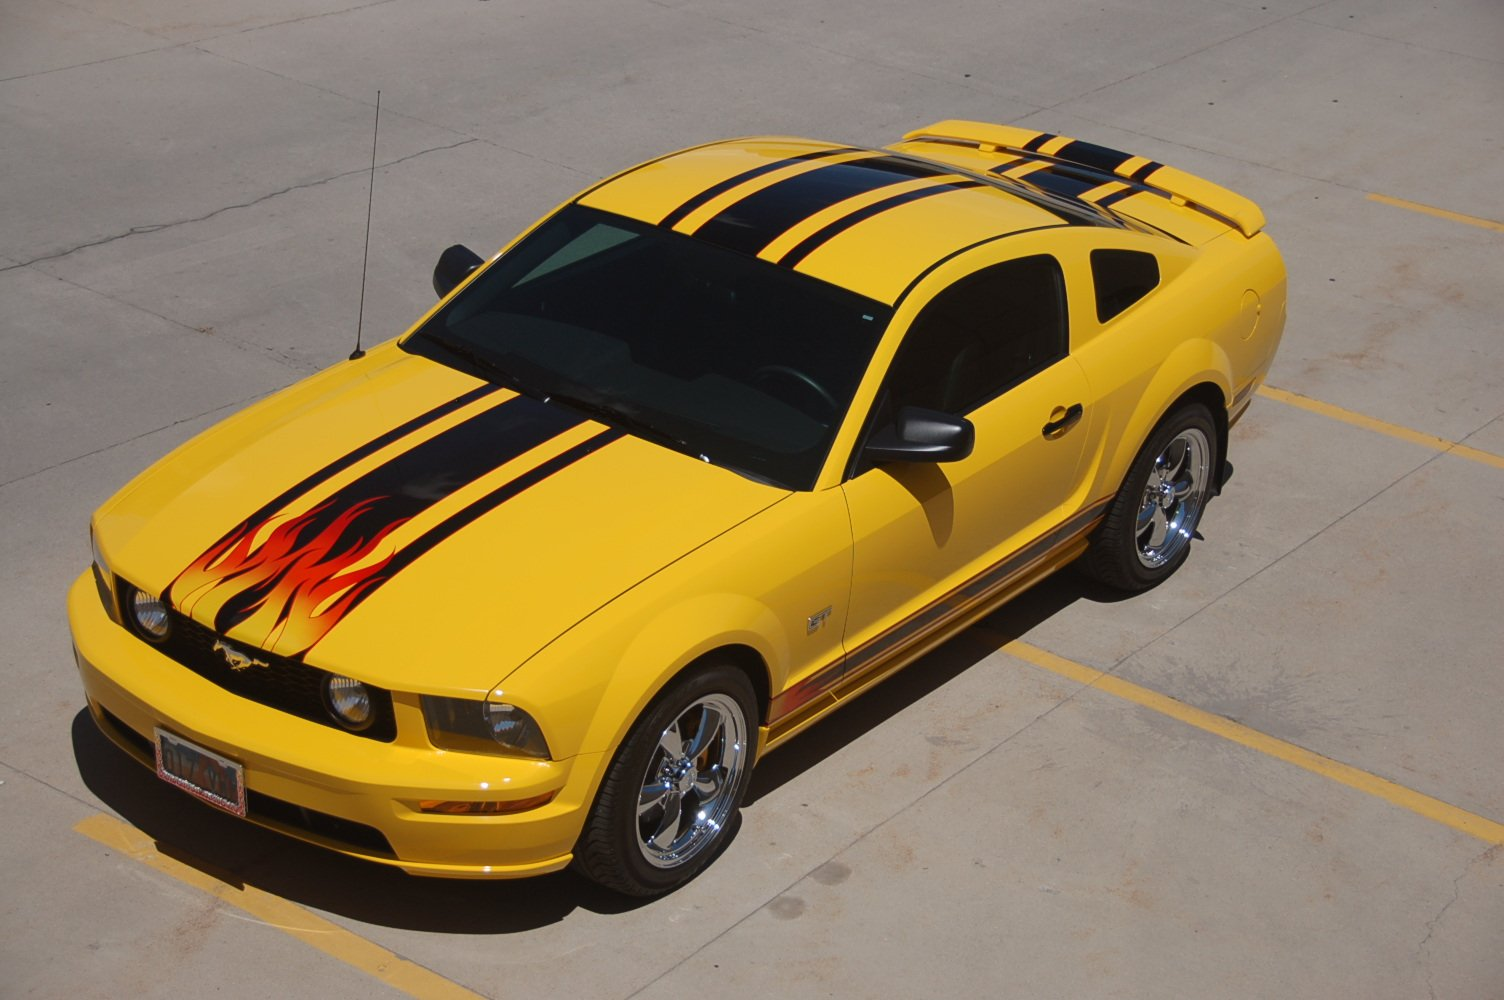 Black Stripes On Screaming Yellow With Flames Ford